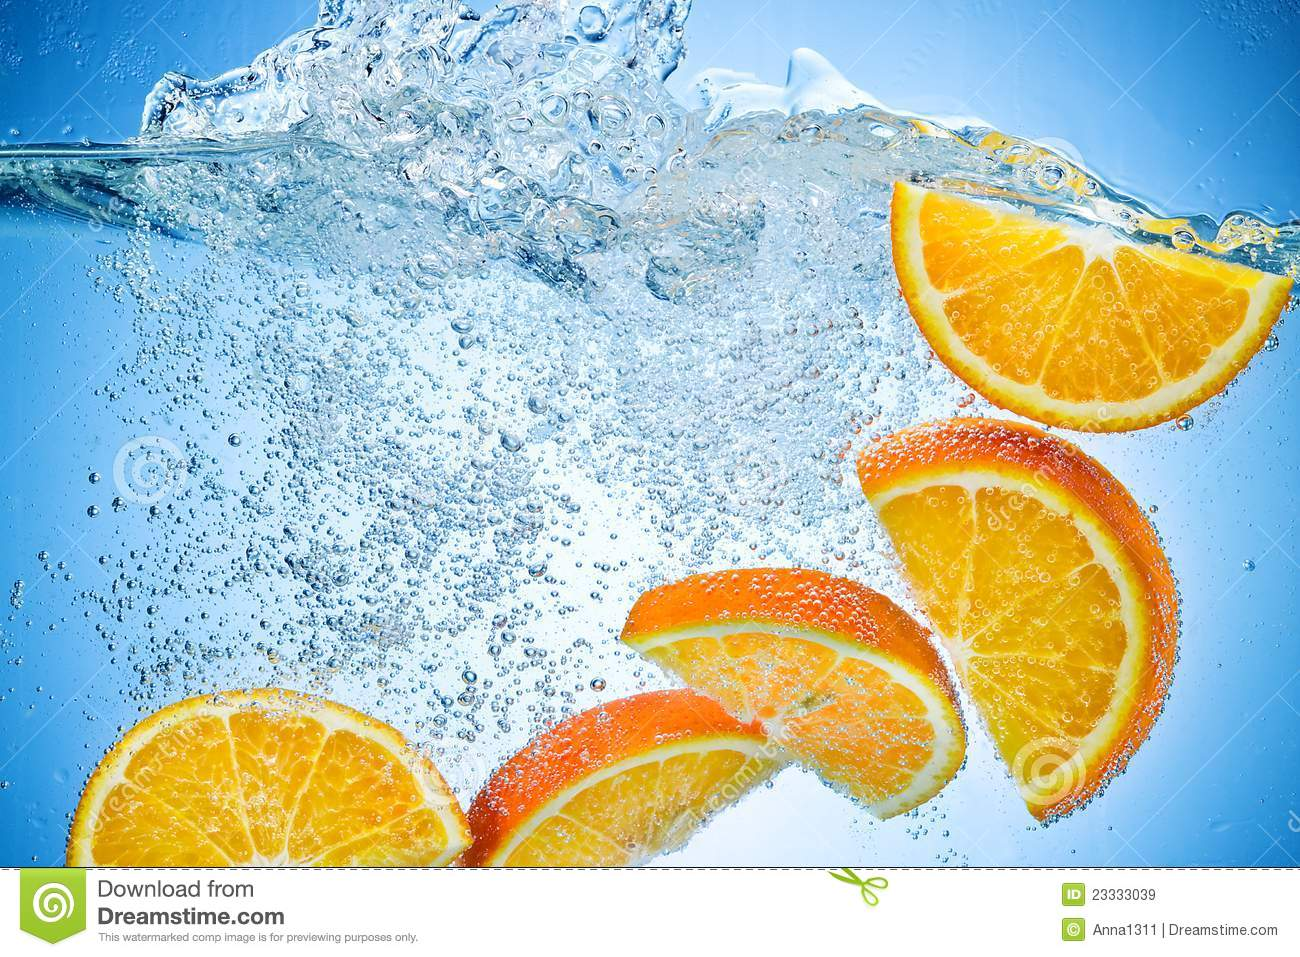 slice 1 orange and fill up the rest of a container with water and ice. Let soak for a minimum of 2 hours. You may keep this refrigerated and drink at your leisure.